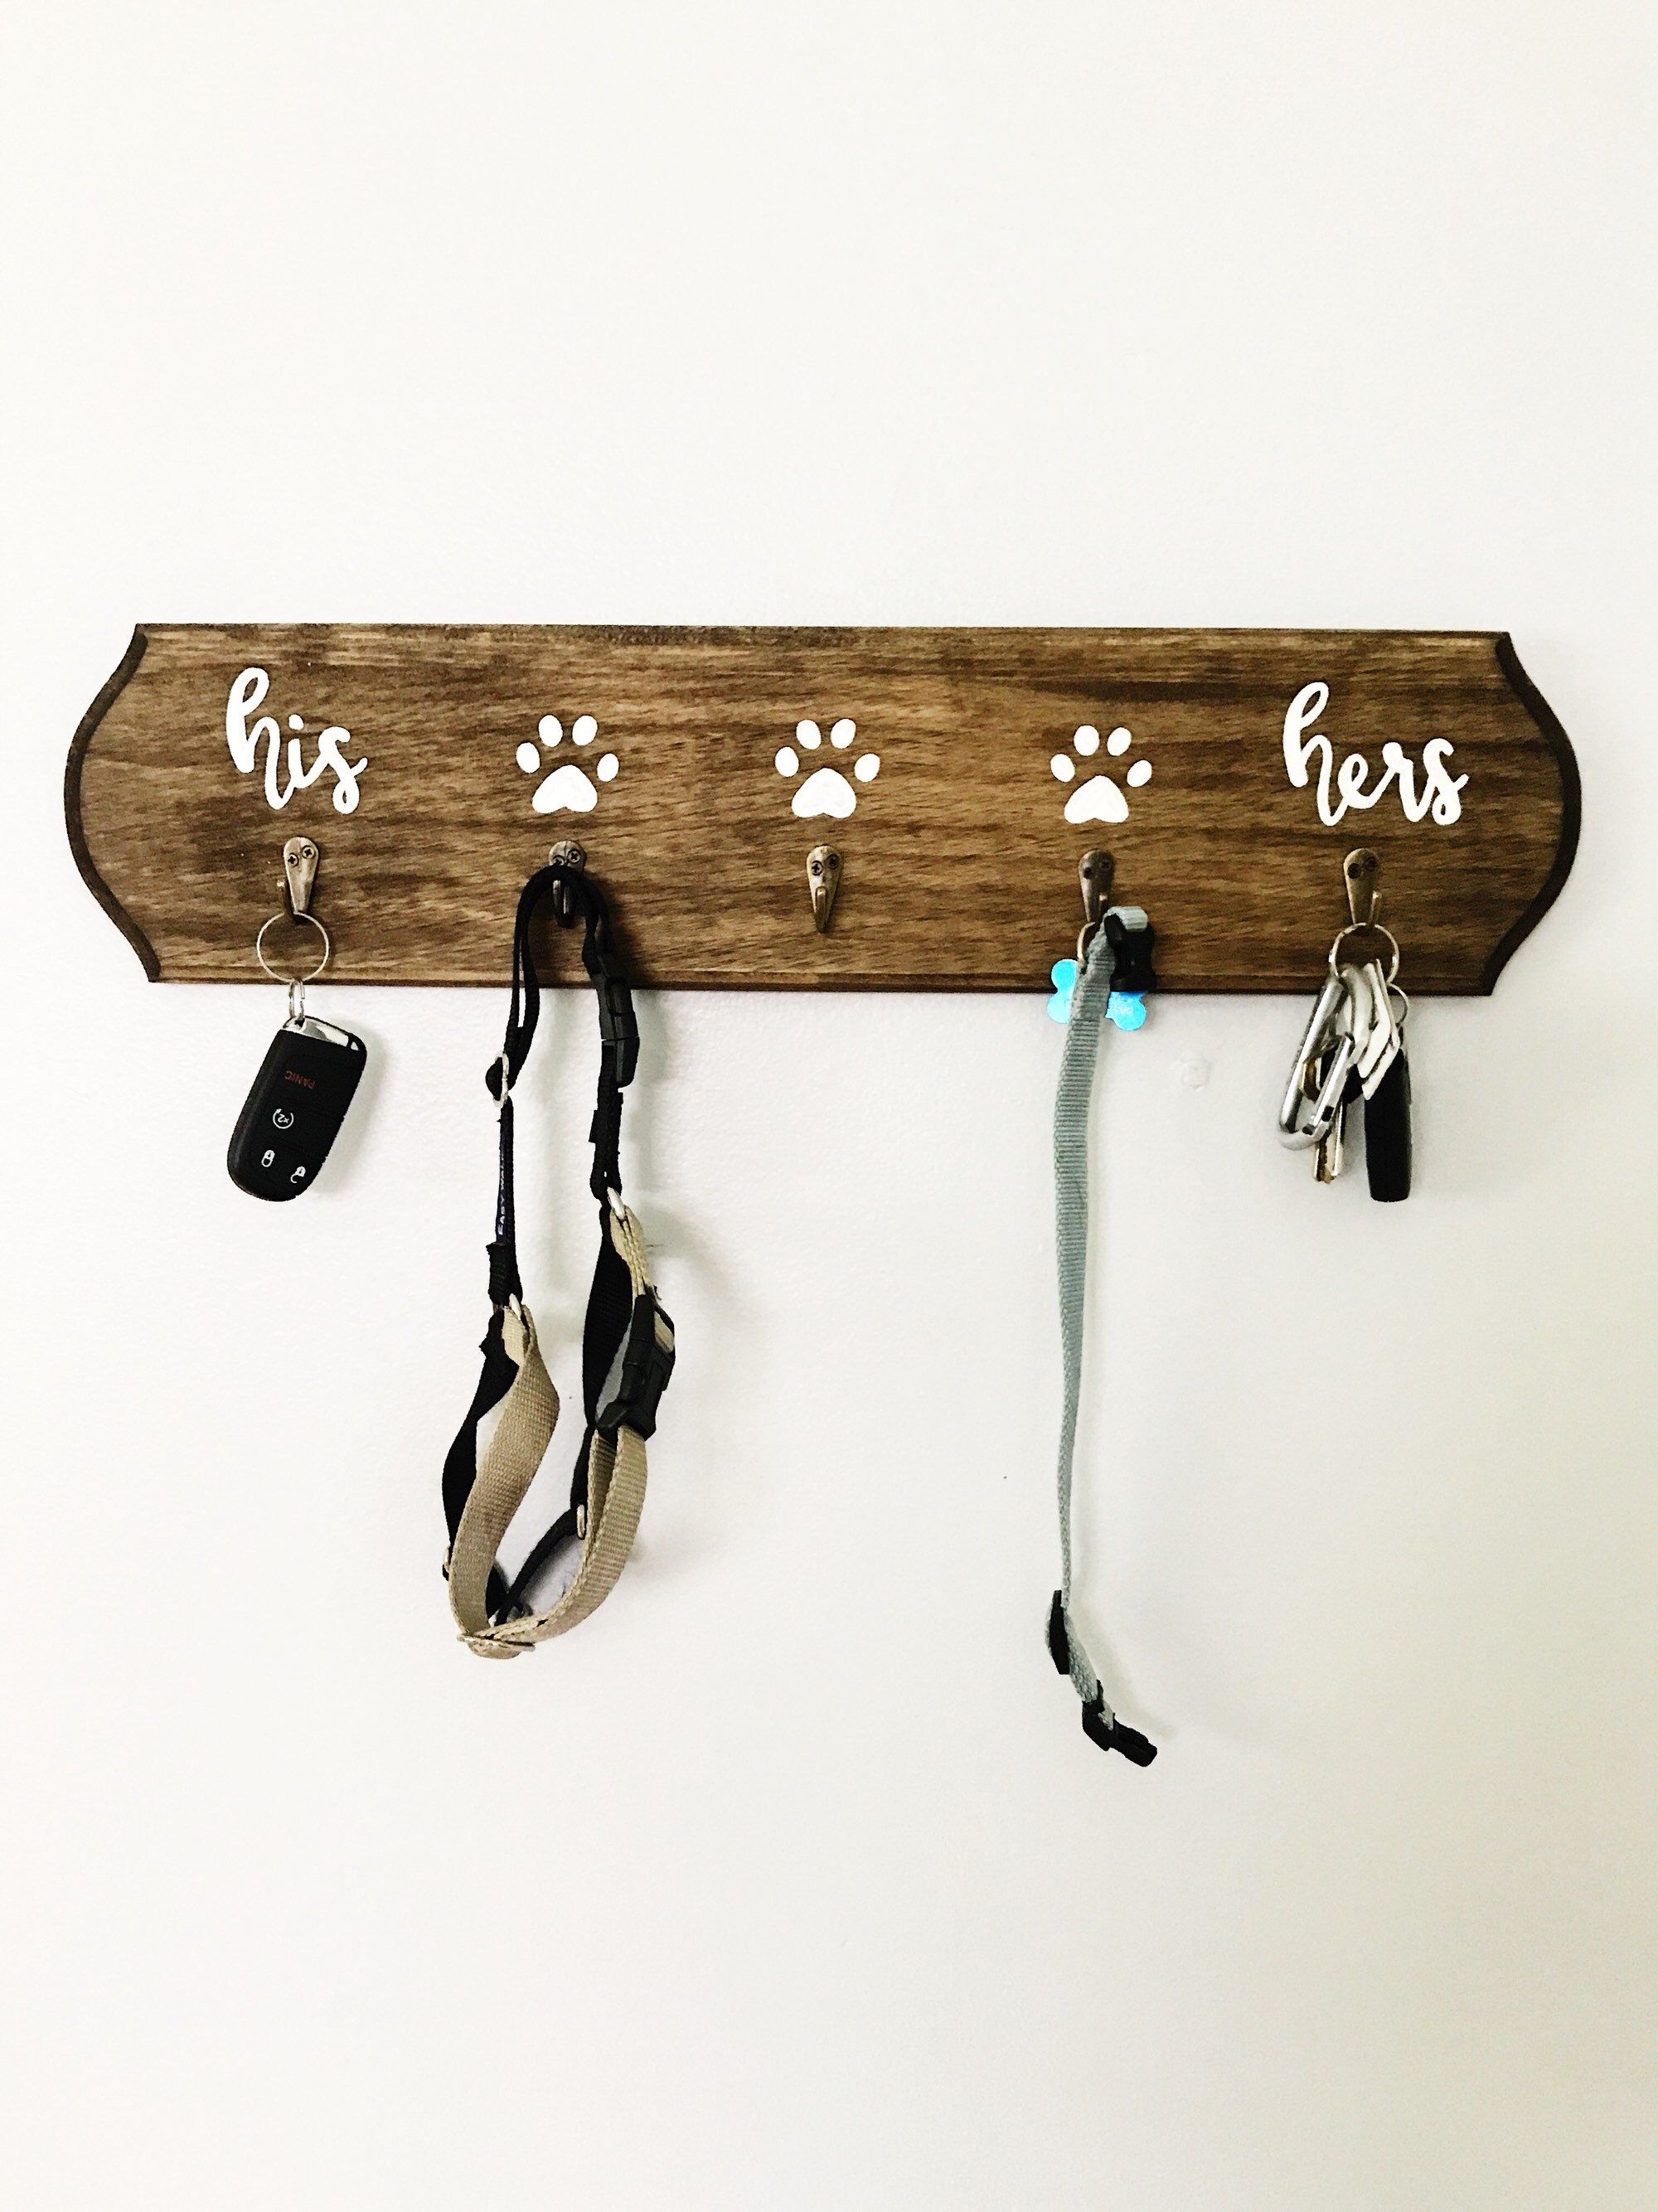 in pin decorative decor balinese bhldn closet hangers carved cor picture wood at treats gifts d artistic hanger